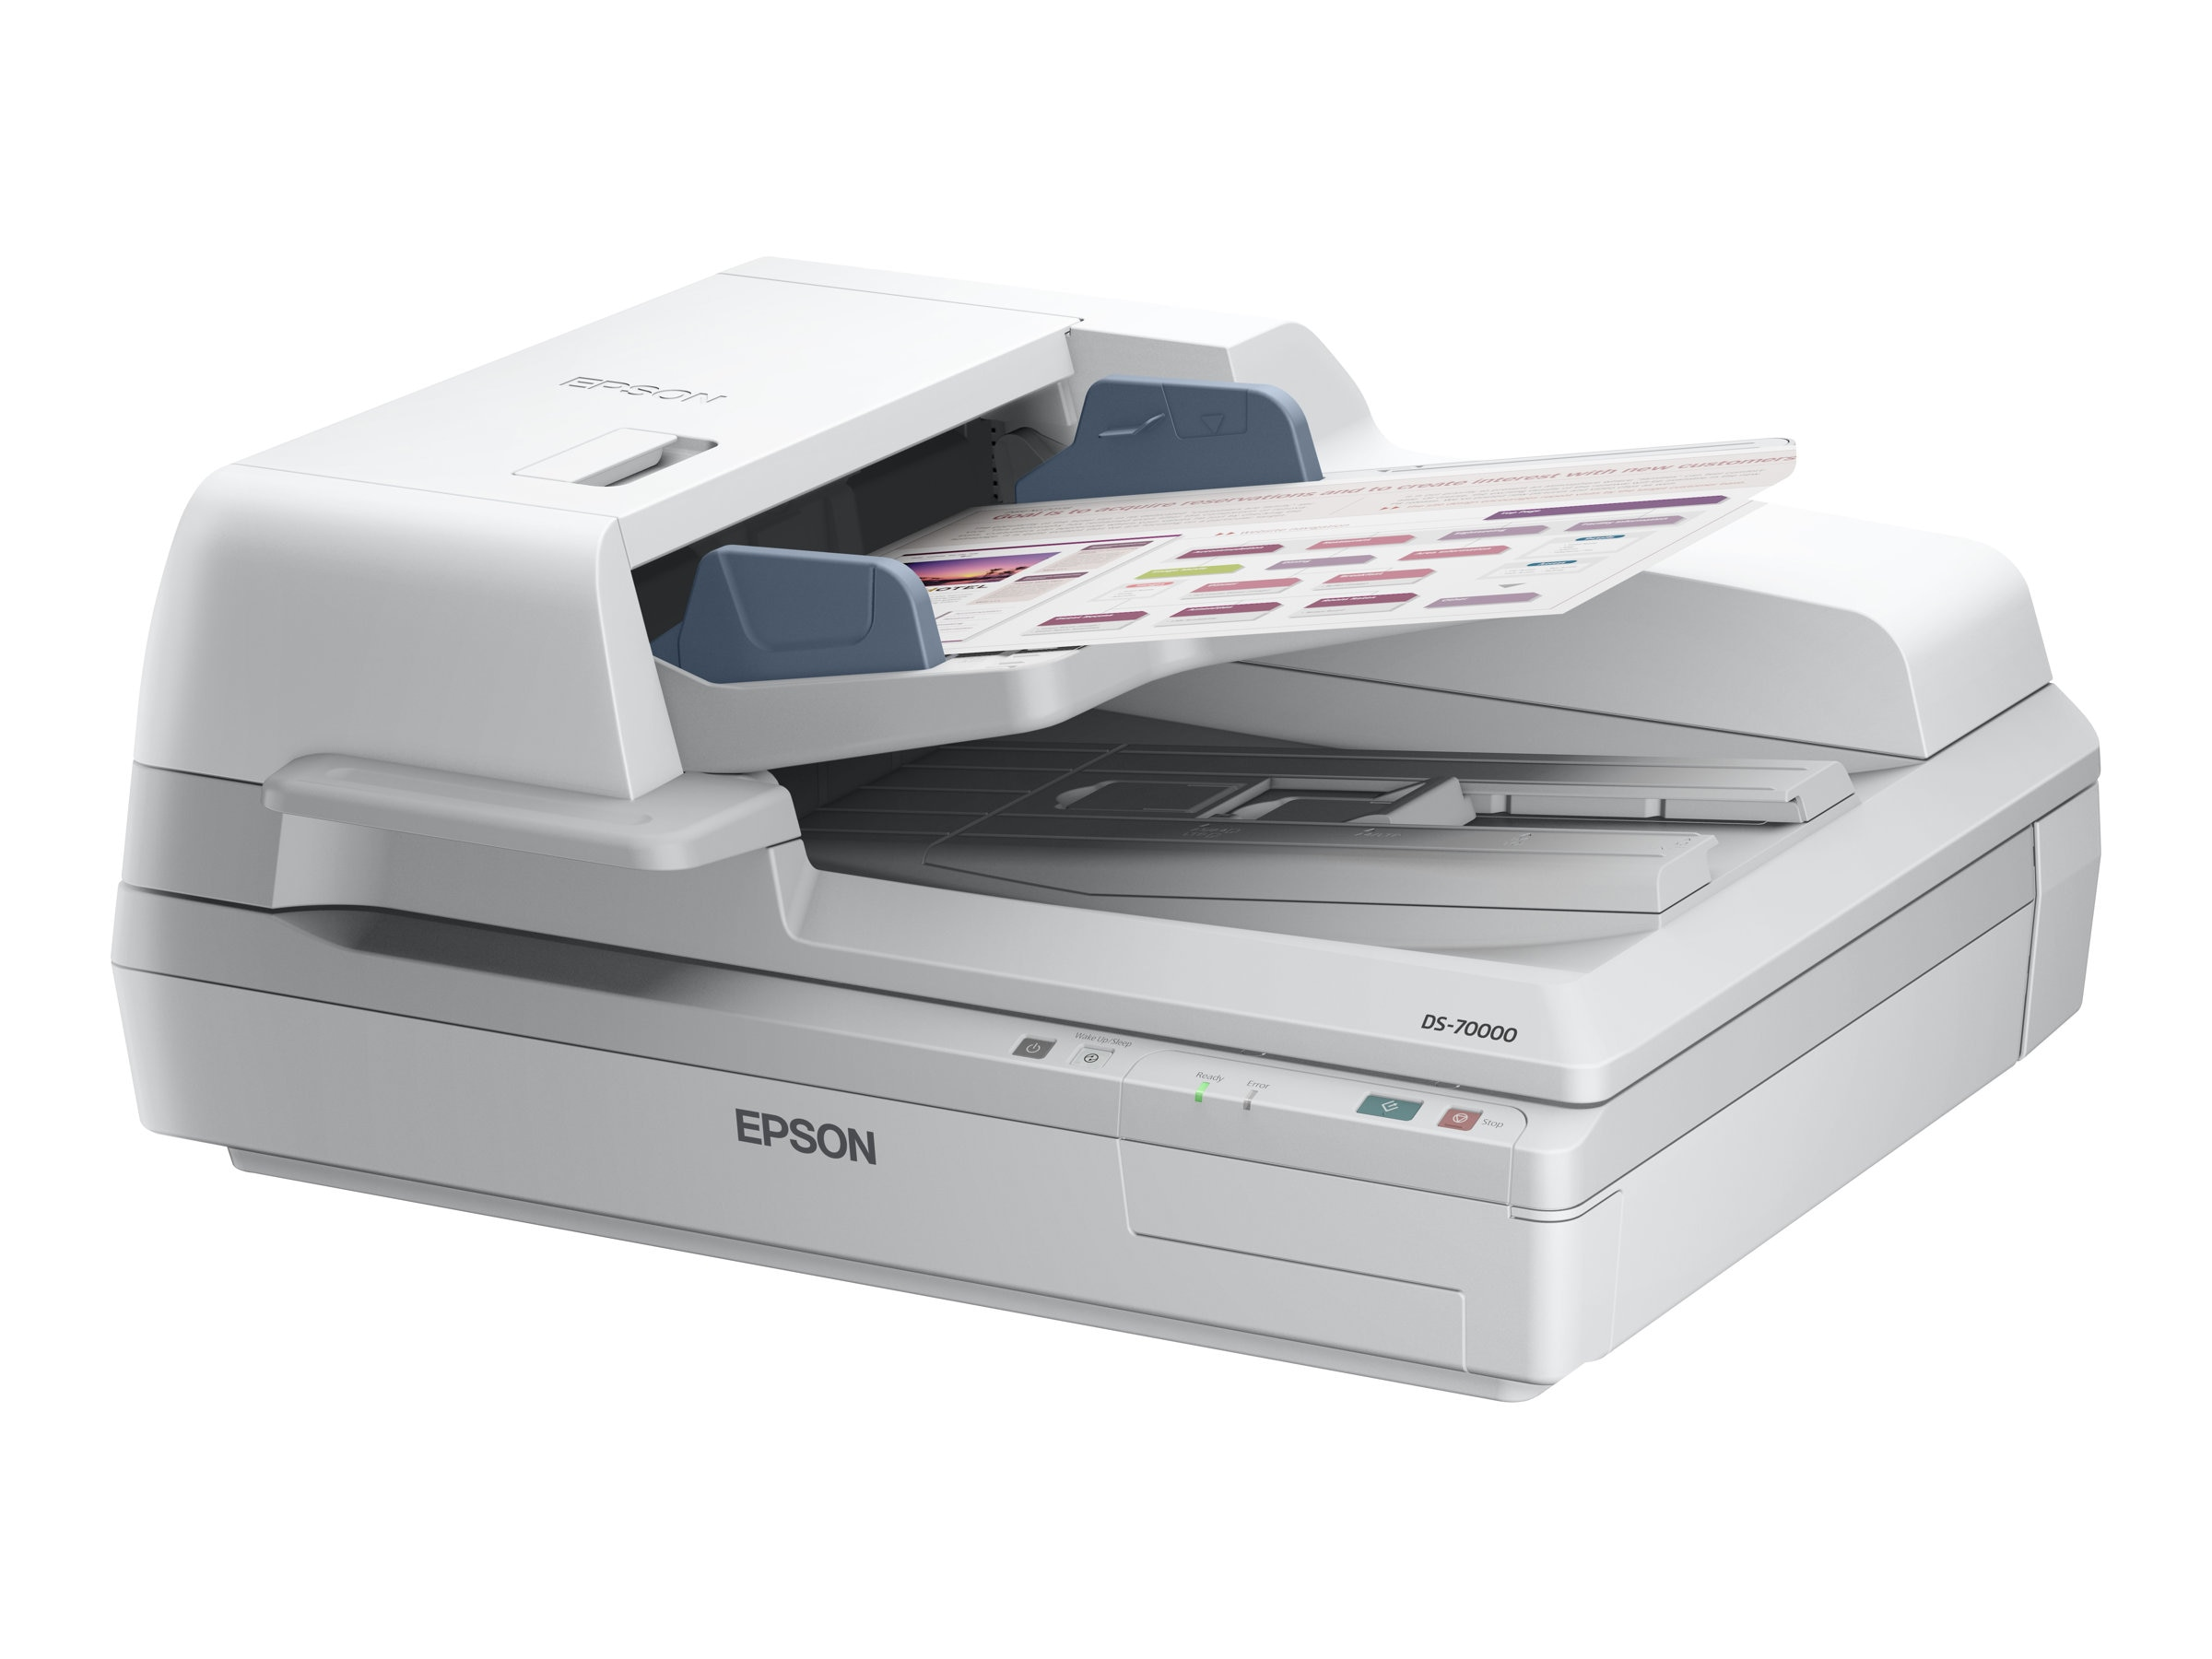 Epson WorkForce DS-70000 Scanner - $3999 less instant rebate of $100.00, B11B204321